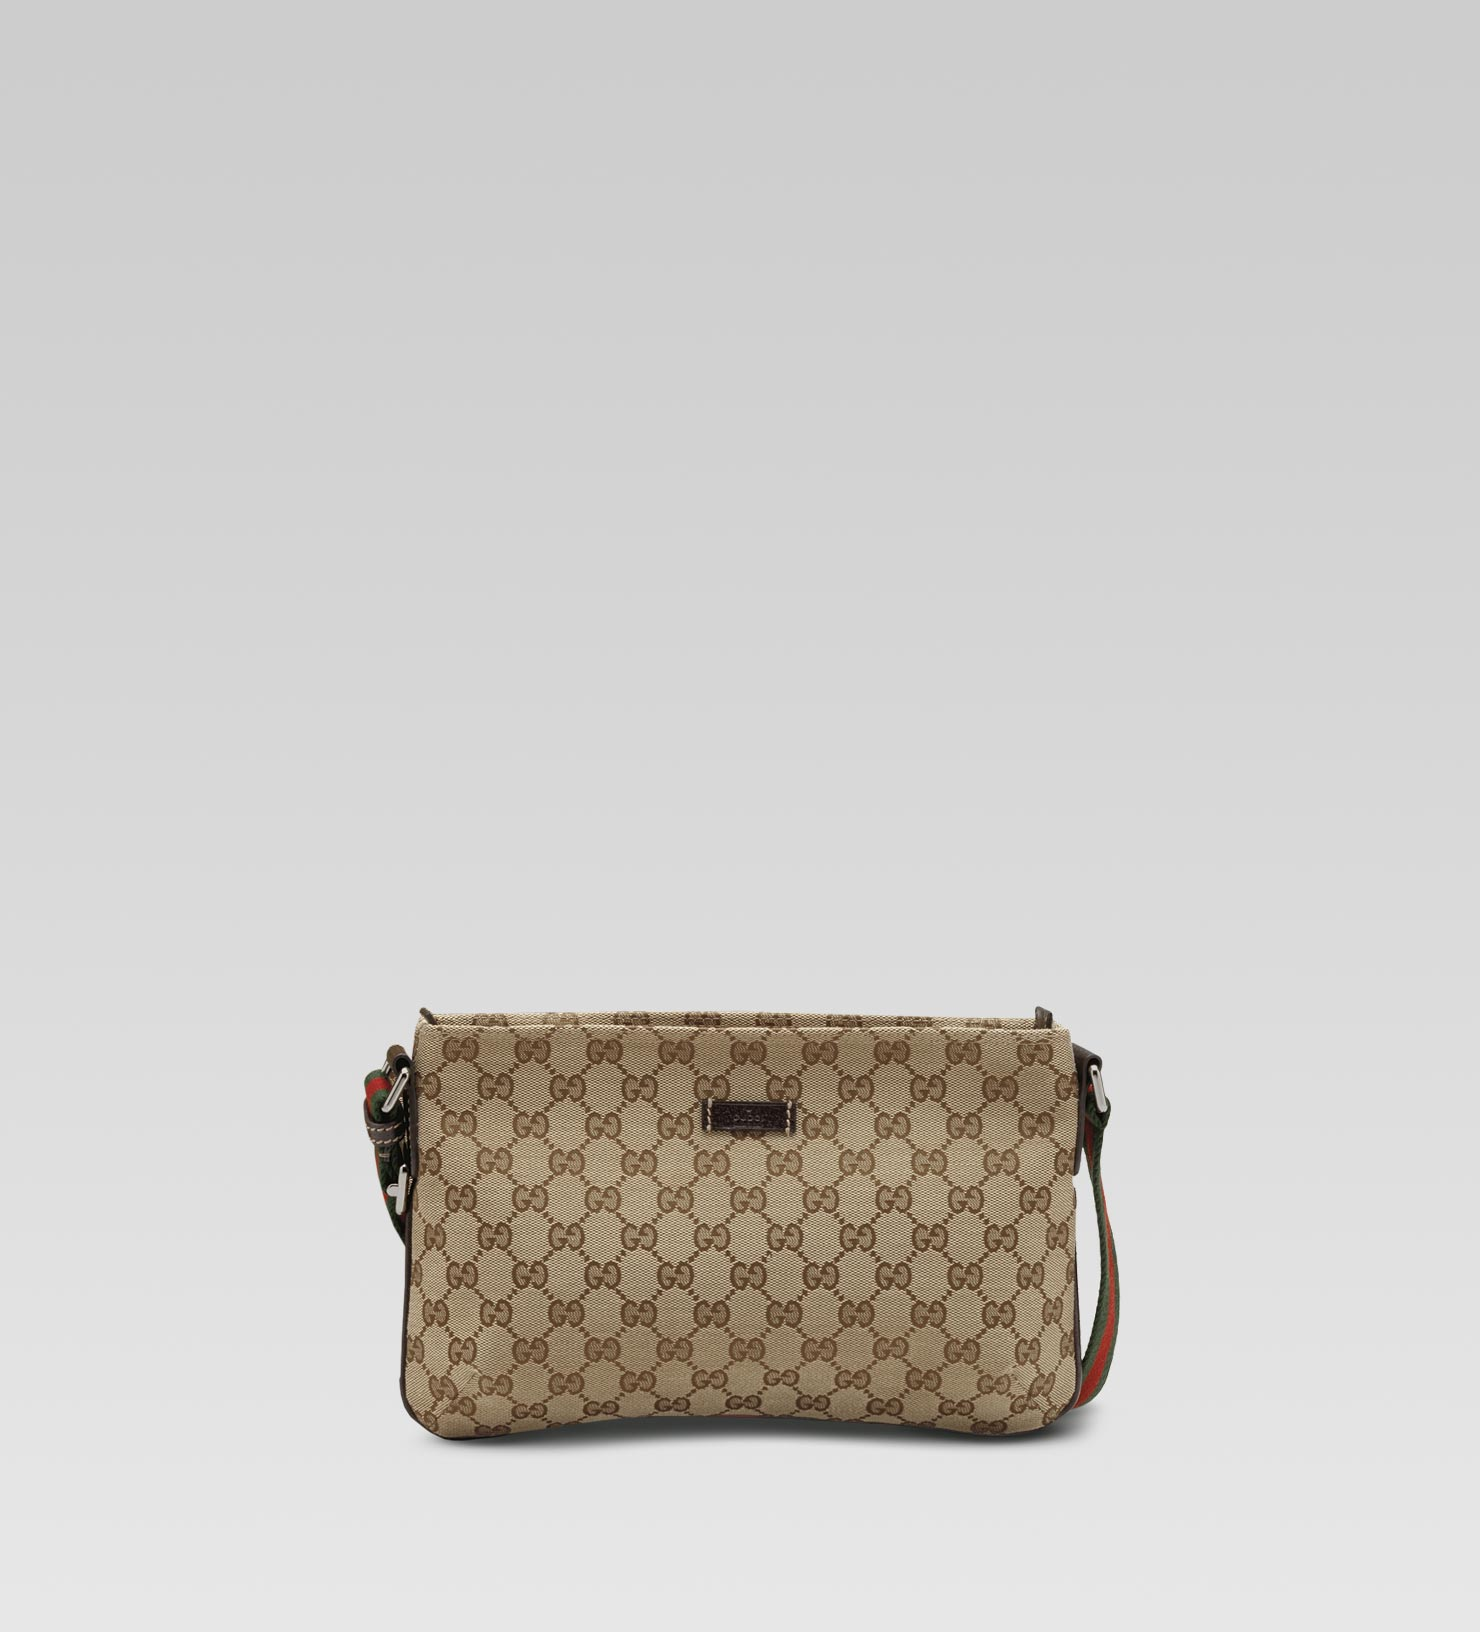 Gucci Small Bag Mens Stanford Center For Opportunity Policy In